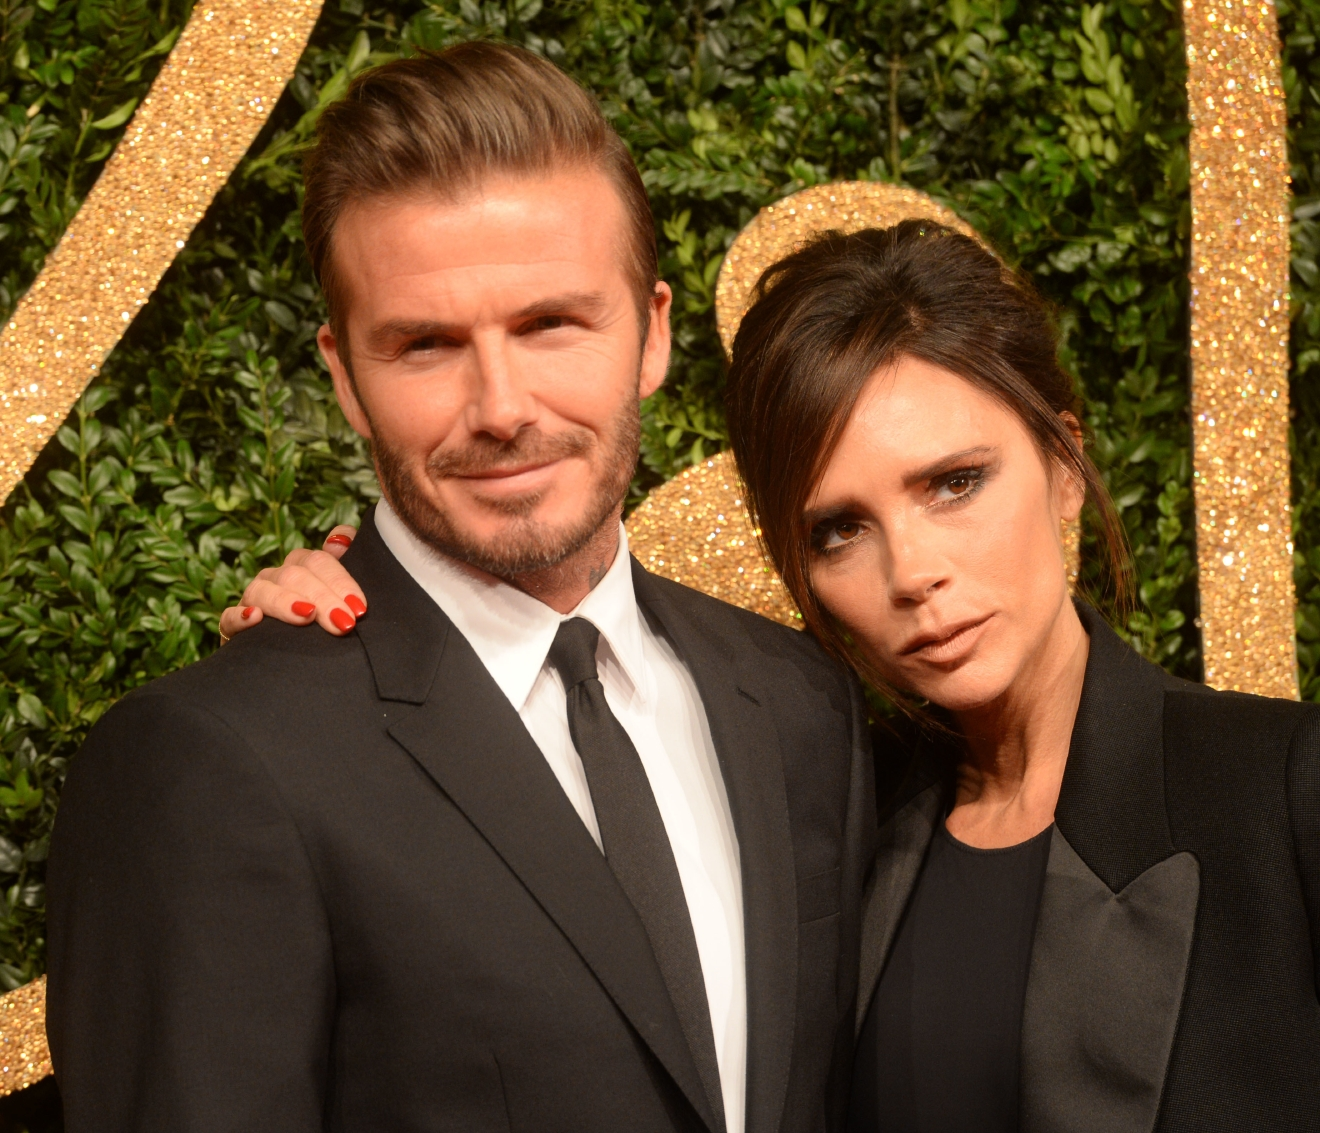 The British Fashion Awards 2015  Featuring: David Beckham, Victoria Beckham Where: London, United Kingdom When: 23 Nov 2015 Credit: WENN.com